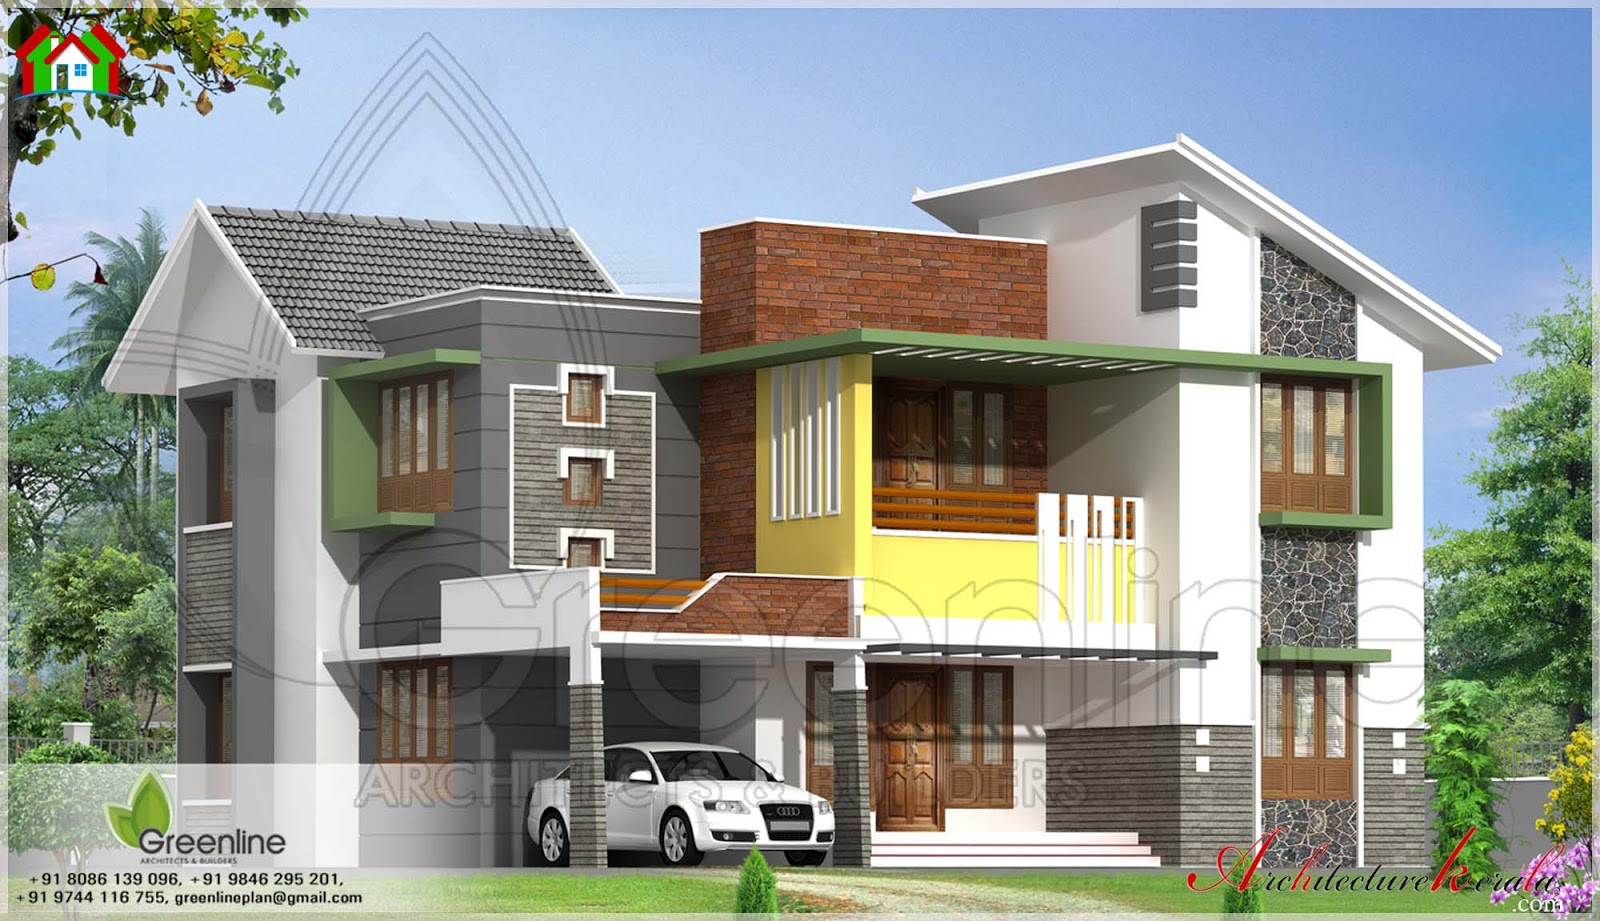 Modern style house elevation architecture kerala for Modern house in kerala